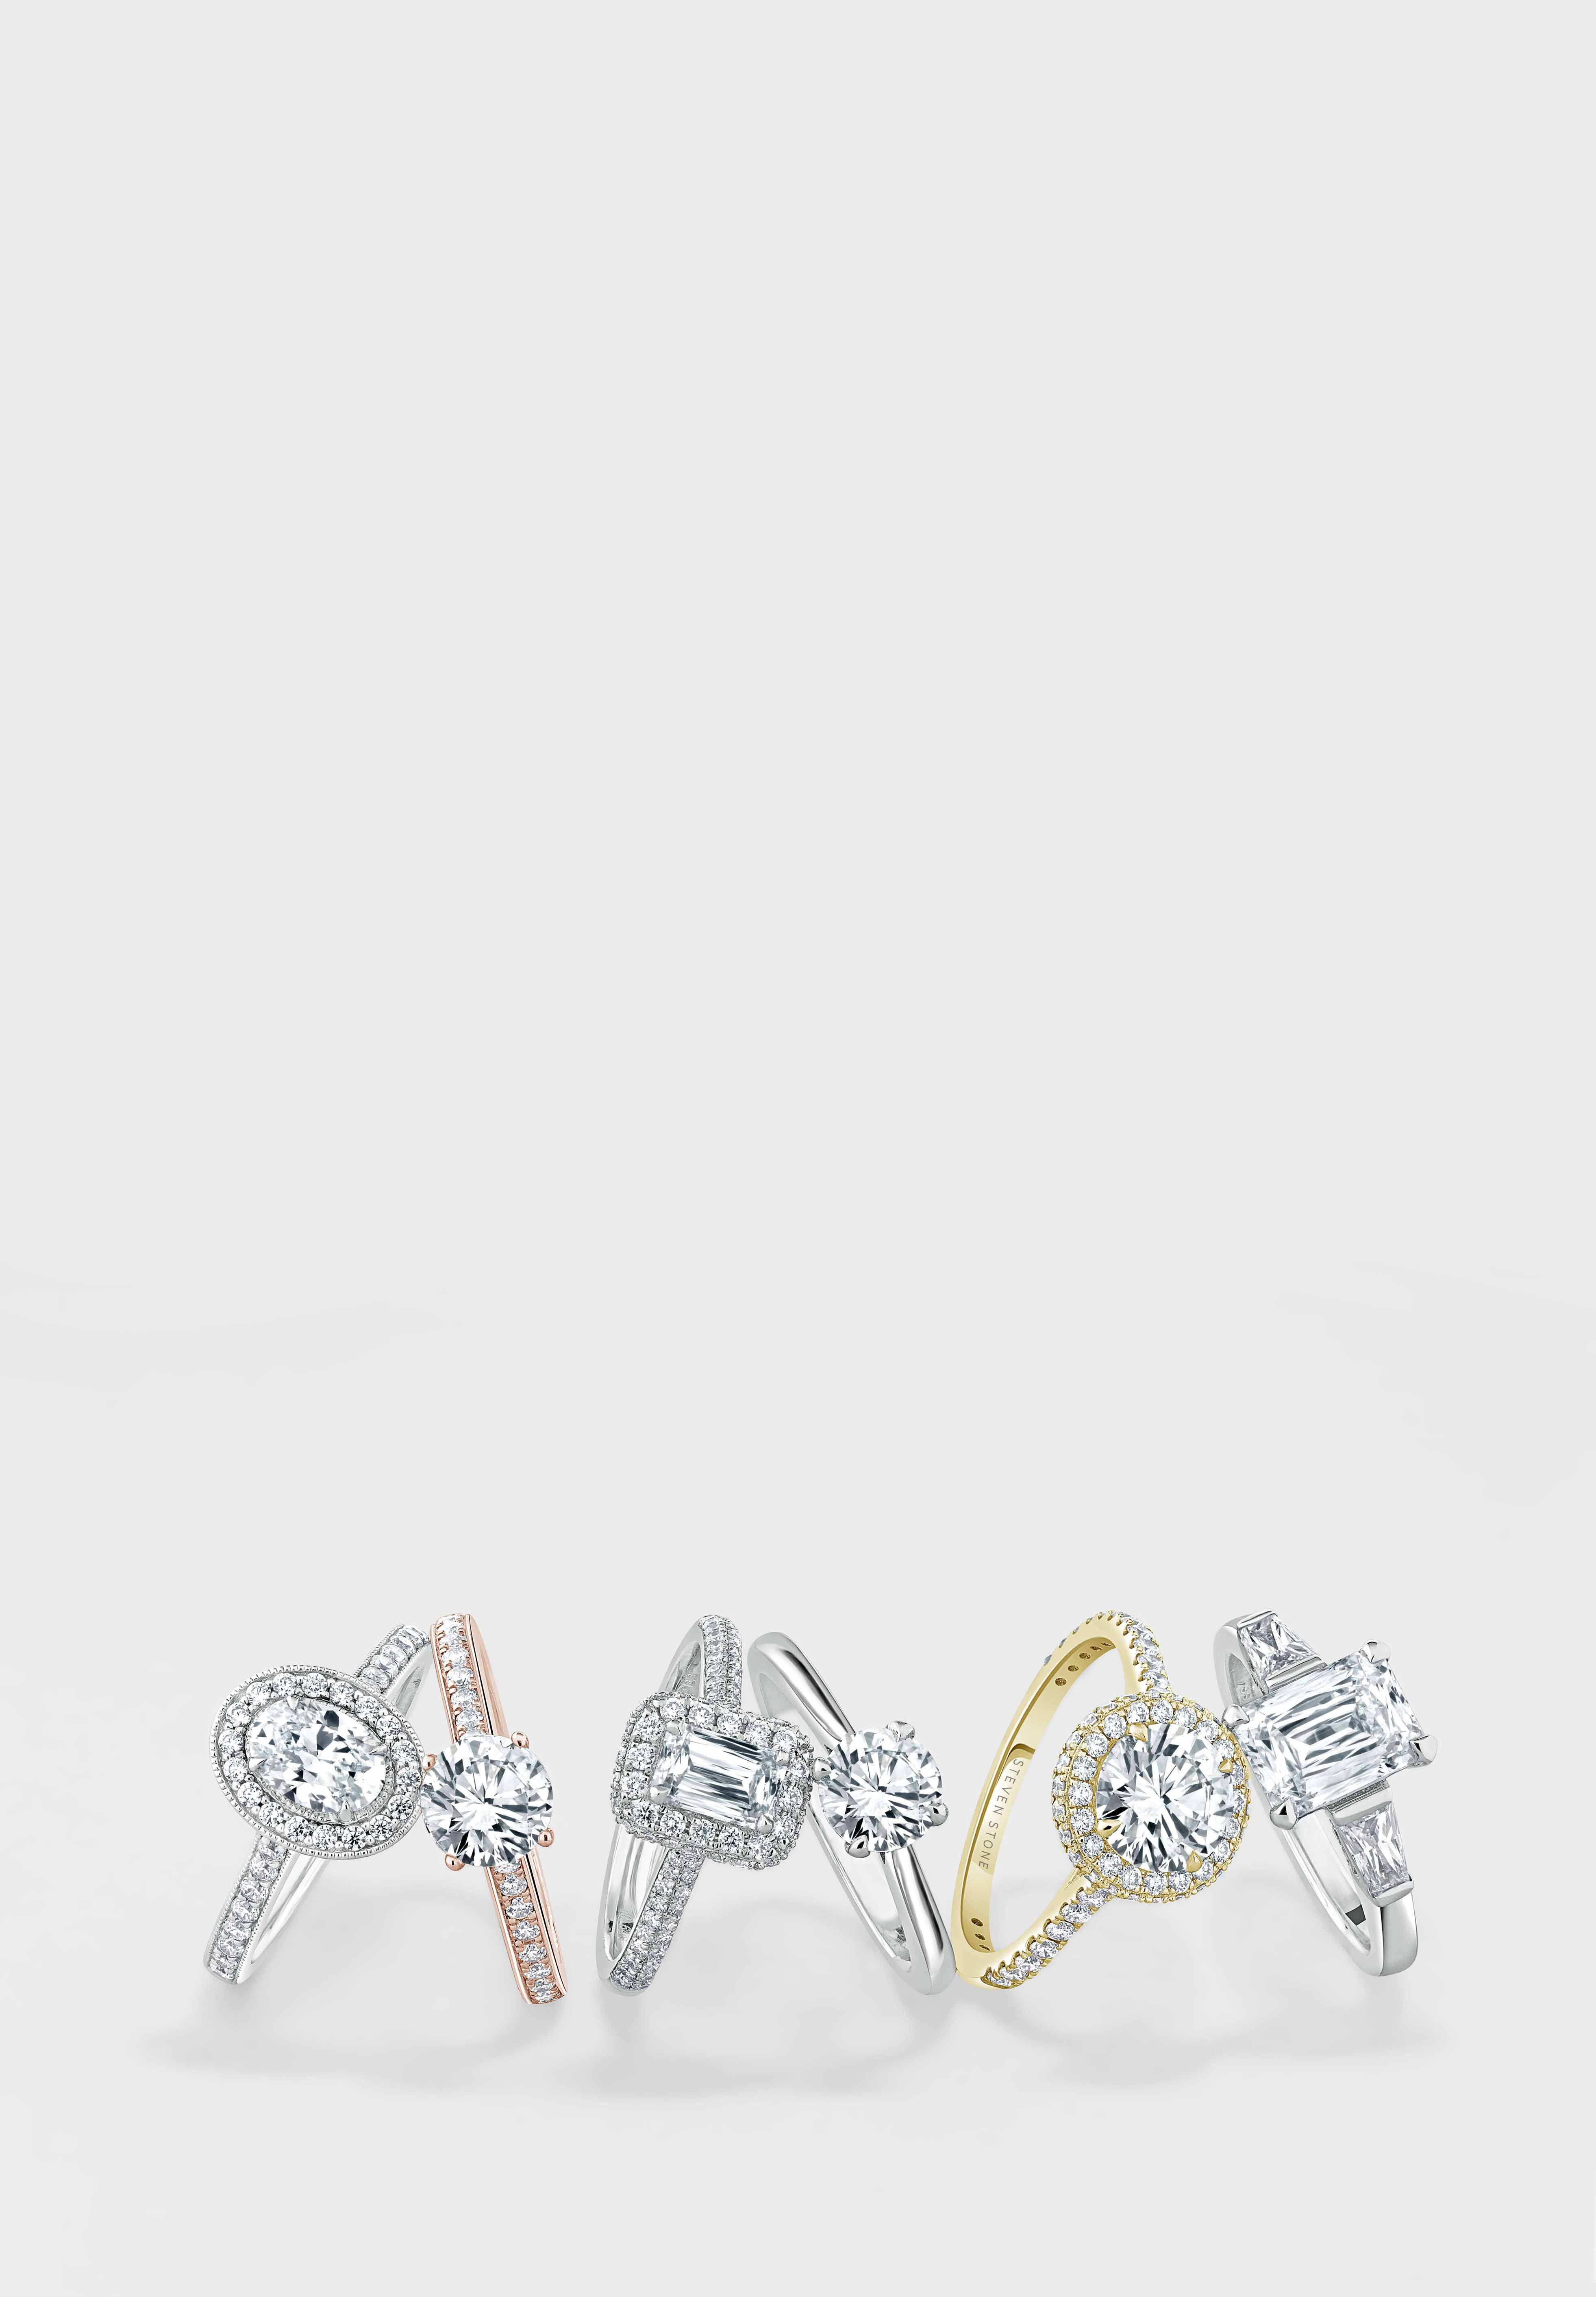 Yellow Gold Pear Shaped Engagement Rings - Steven Stone